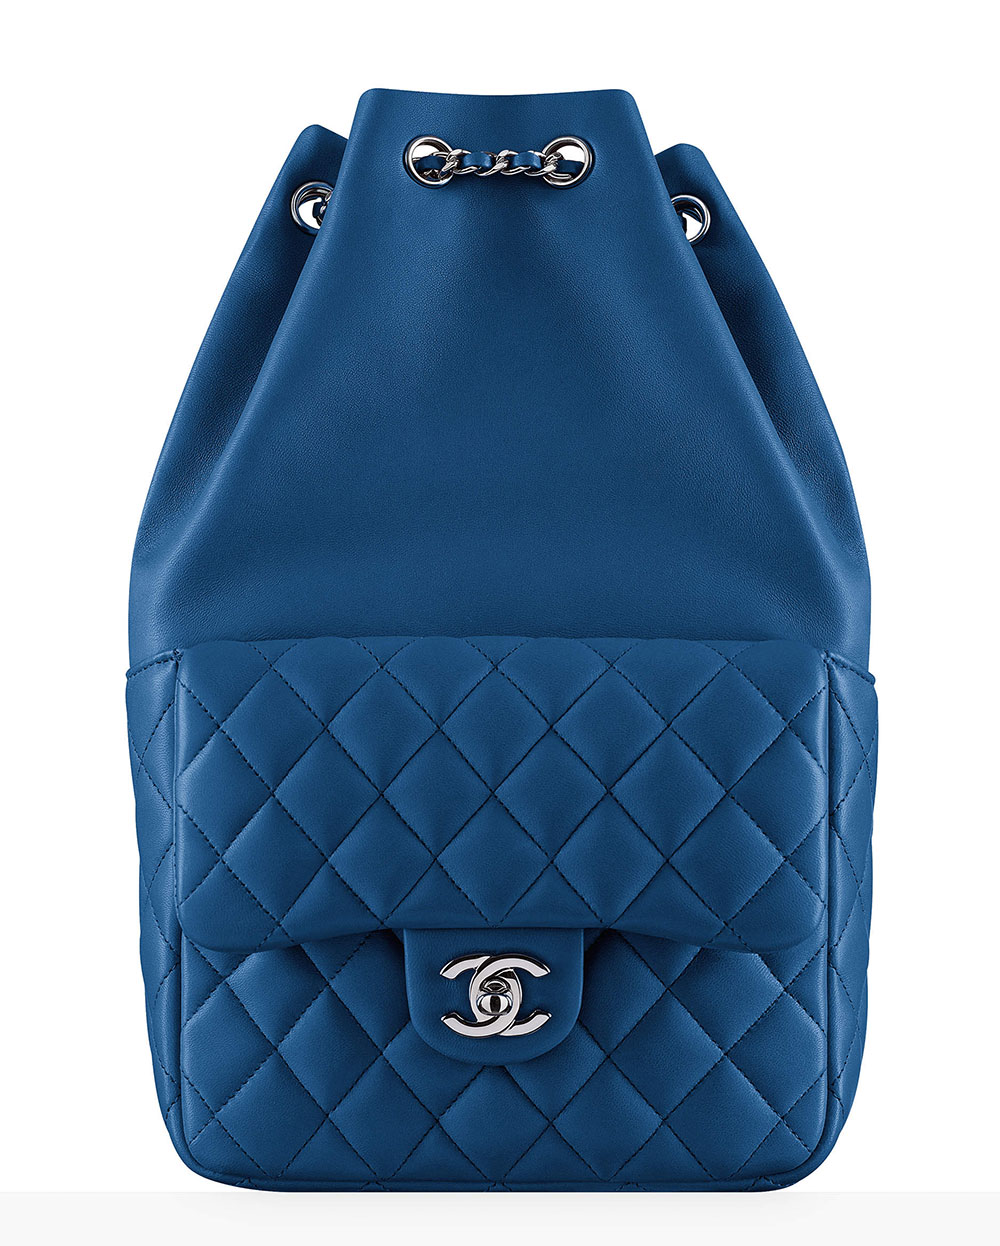 Chanel-Drawstring-Backpack-Blue-3300 - PurseBlog 05951cb74718d